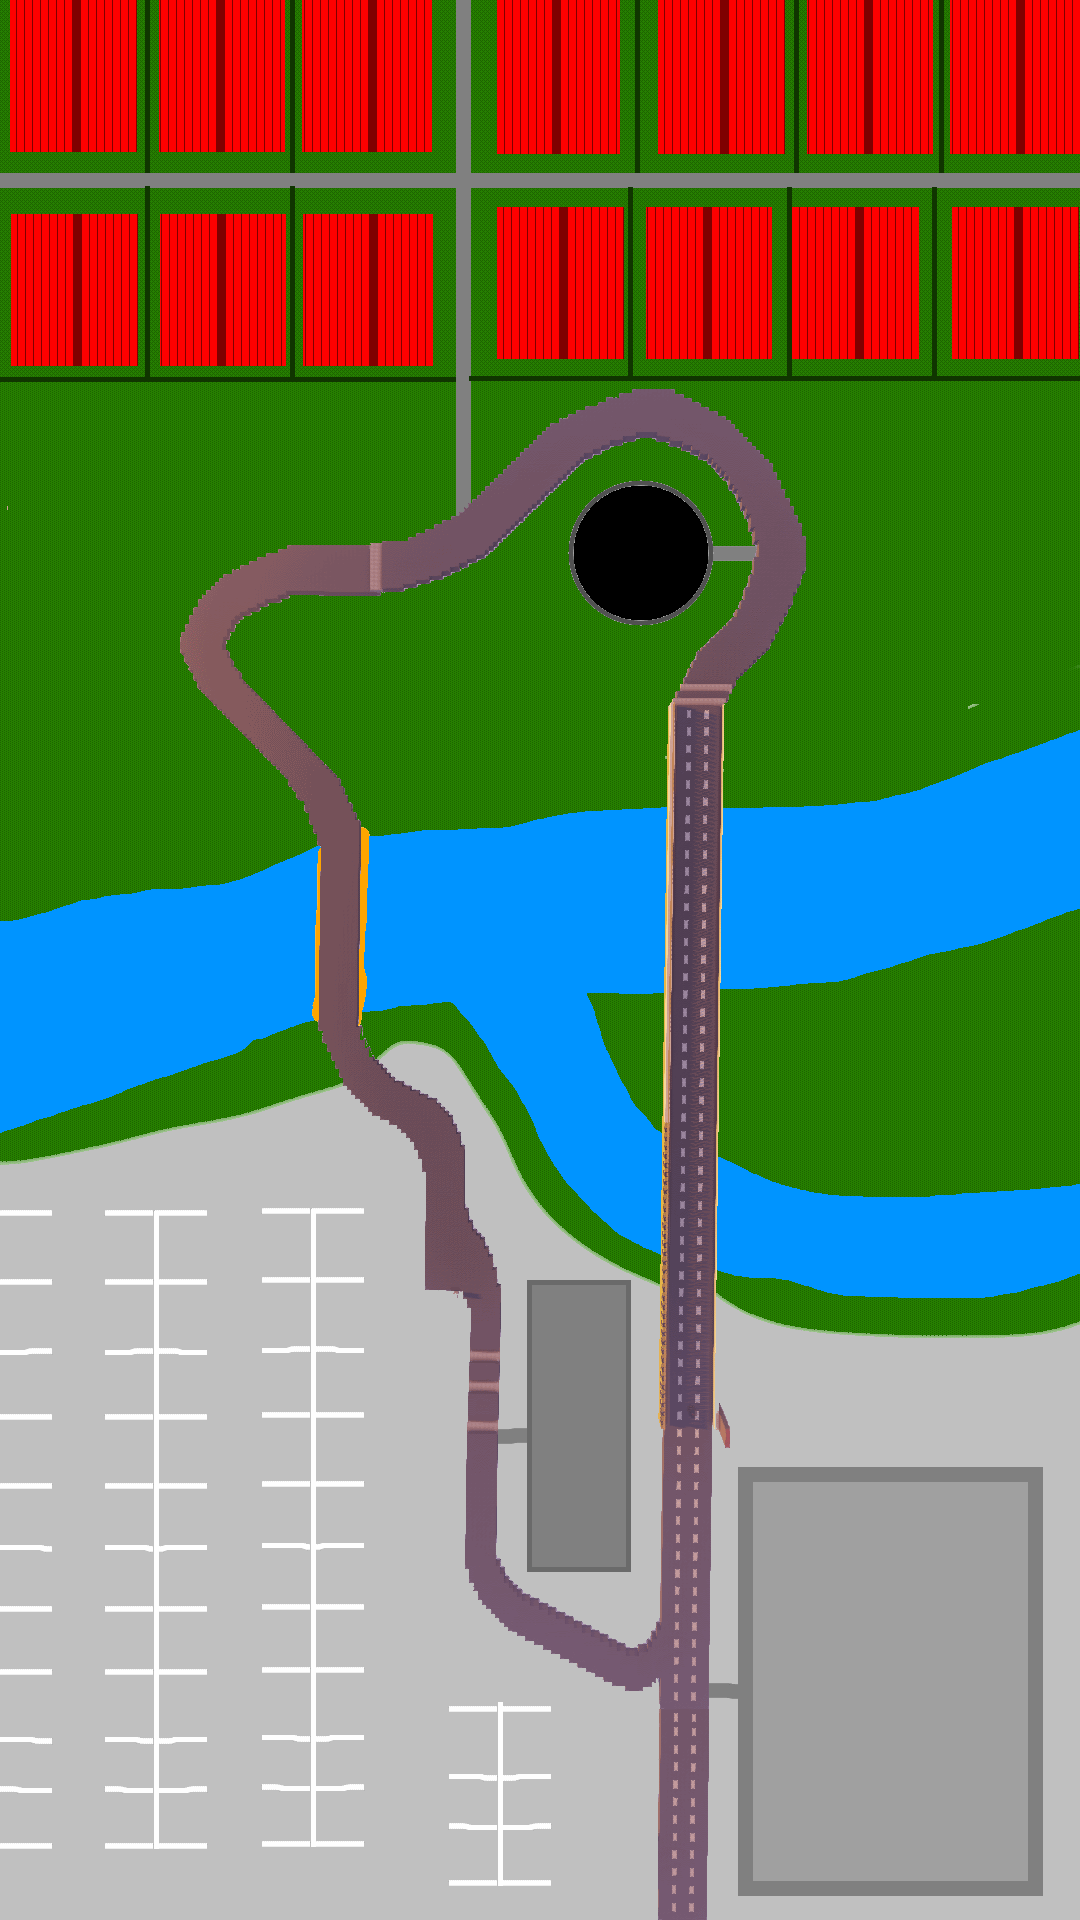 Route 5.png